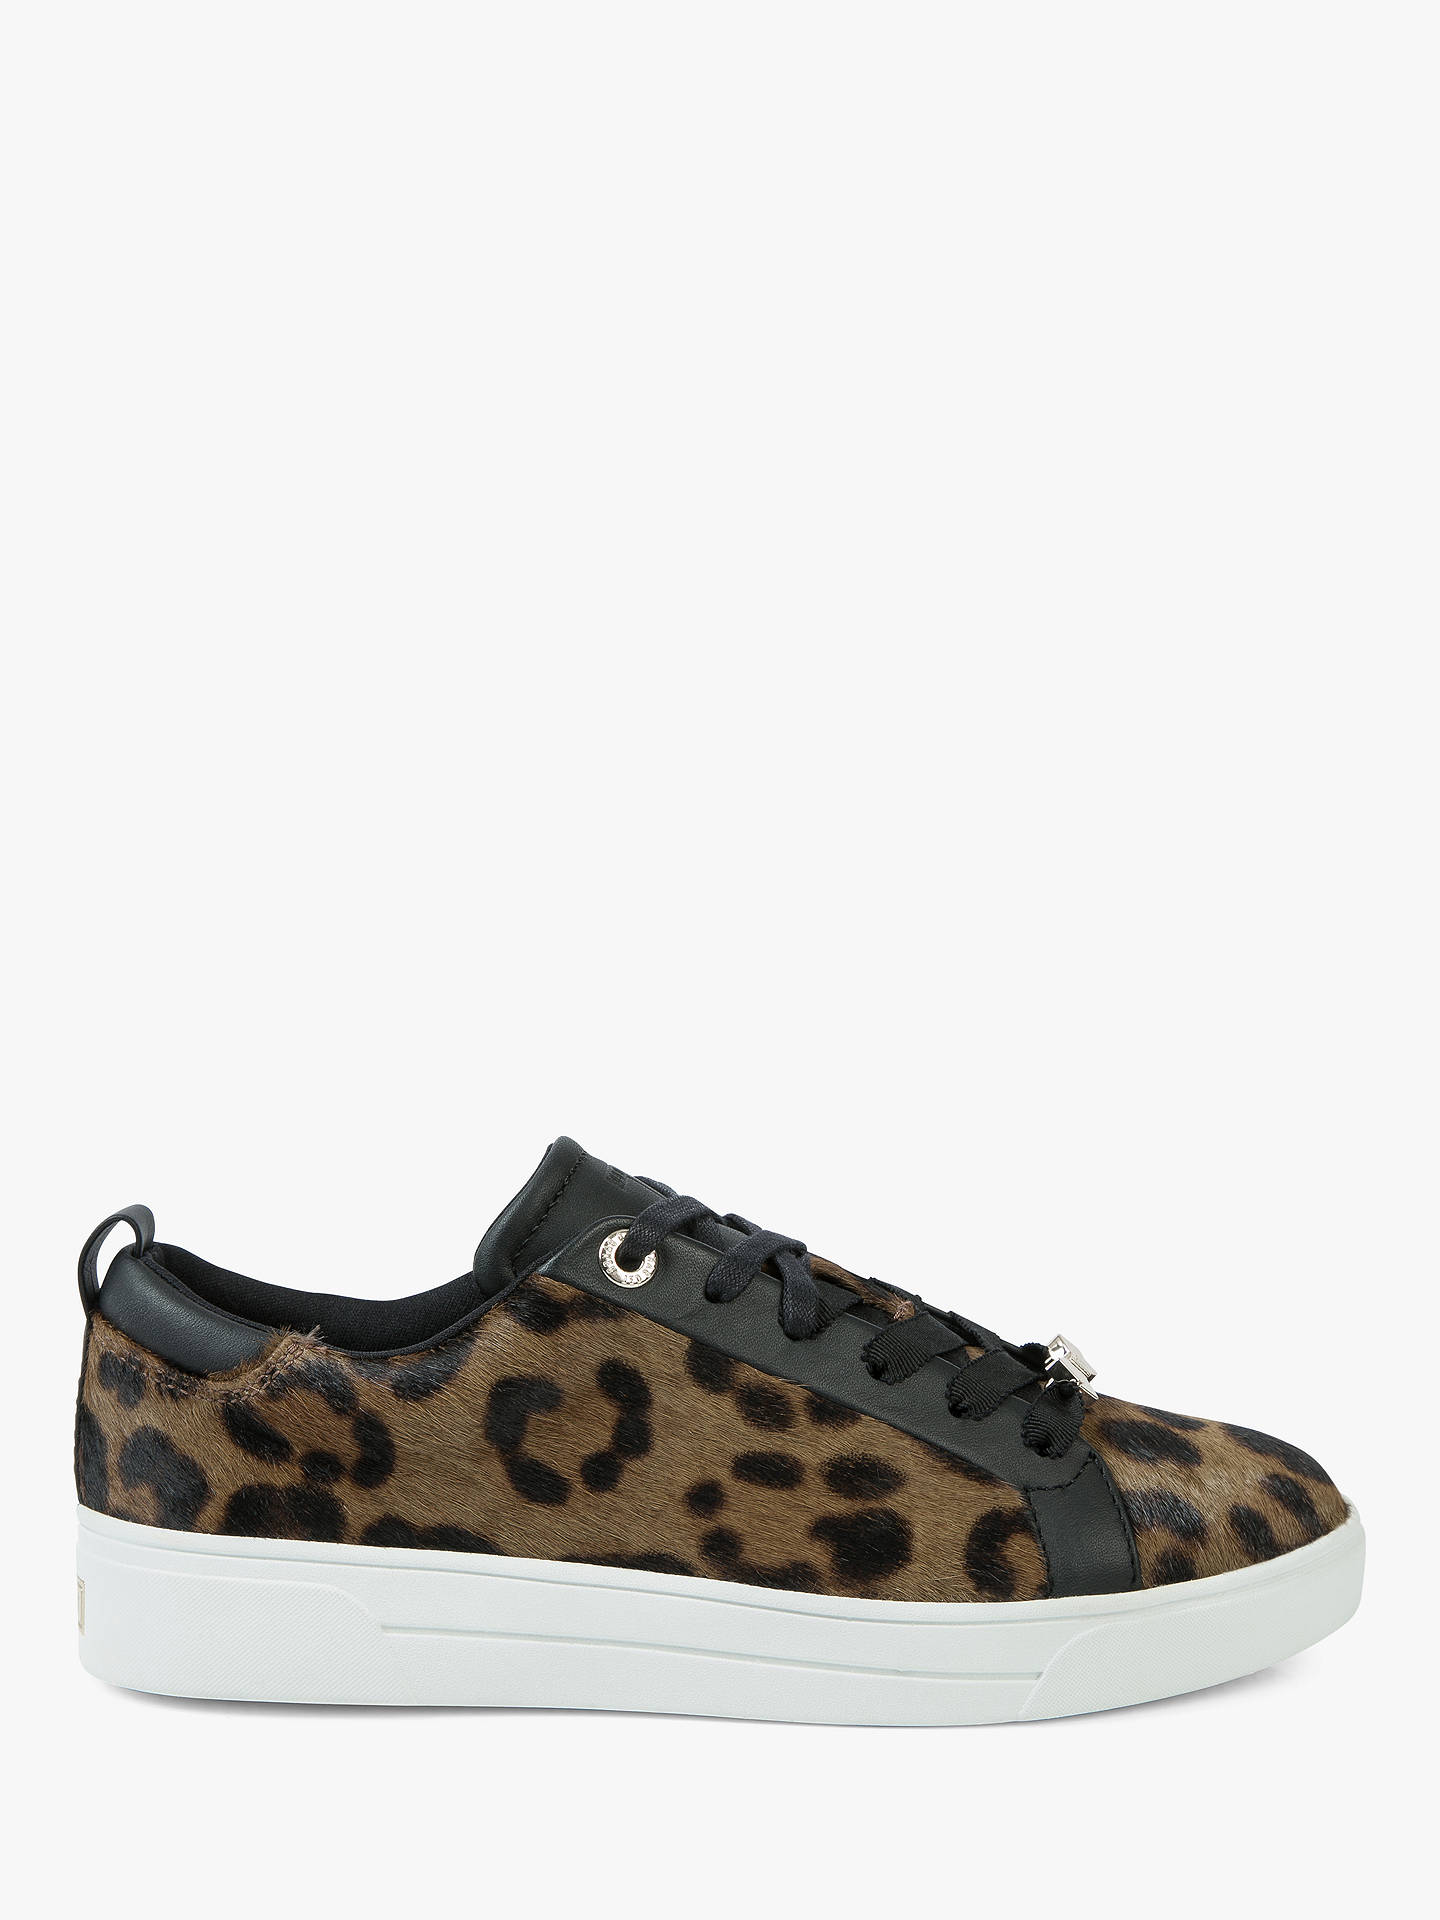 3cd3c69ddfc93 Buy Ted Baker Elzseel Lace Up Trainers